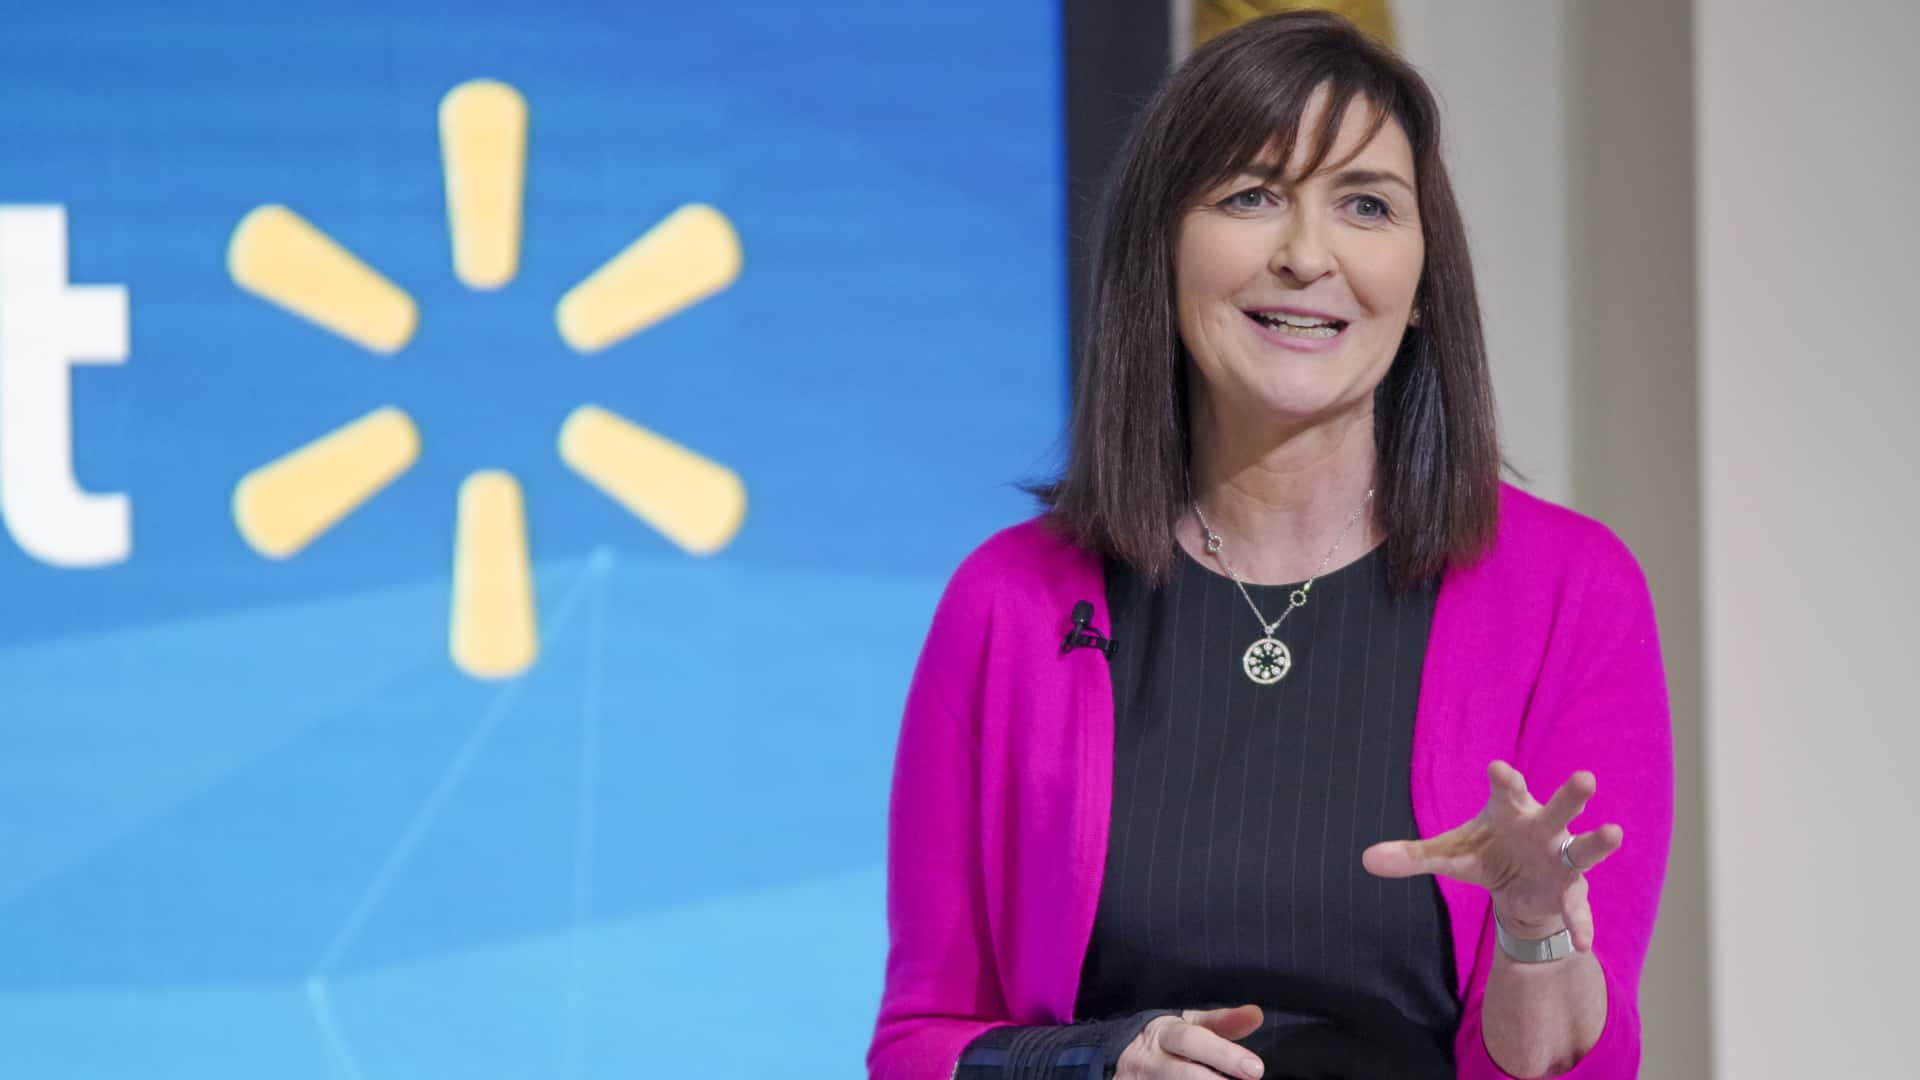 Innovations from Indian mkt helping us improve retail globally: Walmart Intl CEO